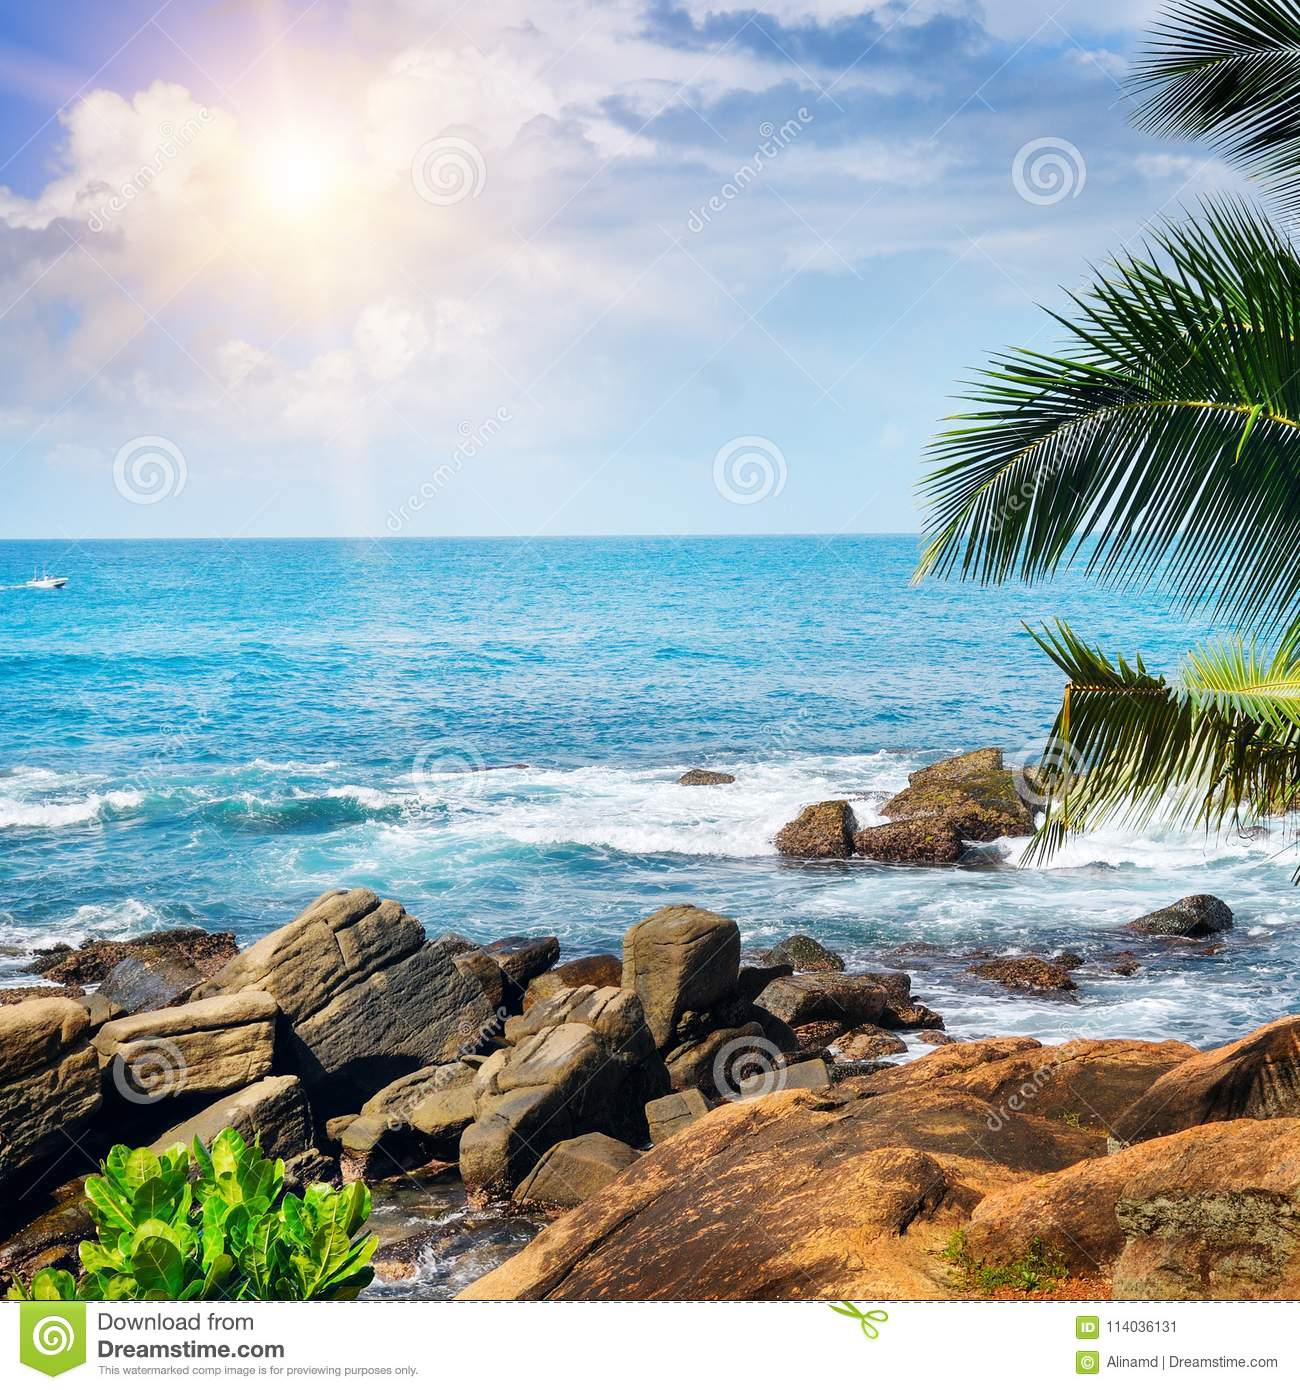 Tropical Beach And Peaceful Ocean: Beach Tropical Ocean , Palm Trees And Sun. Stock Image